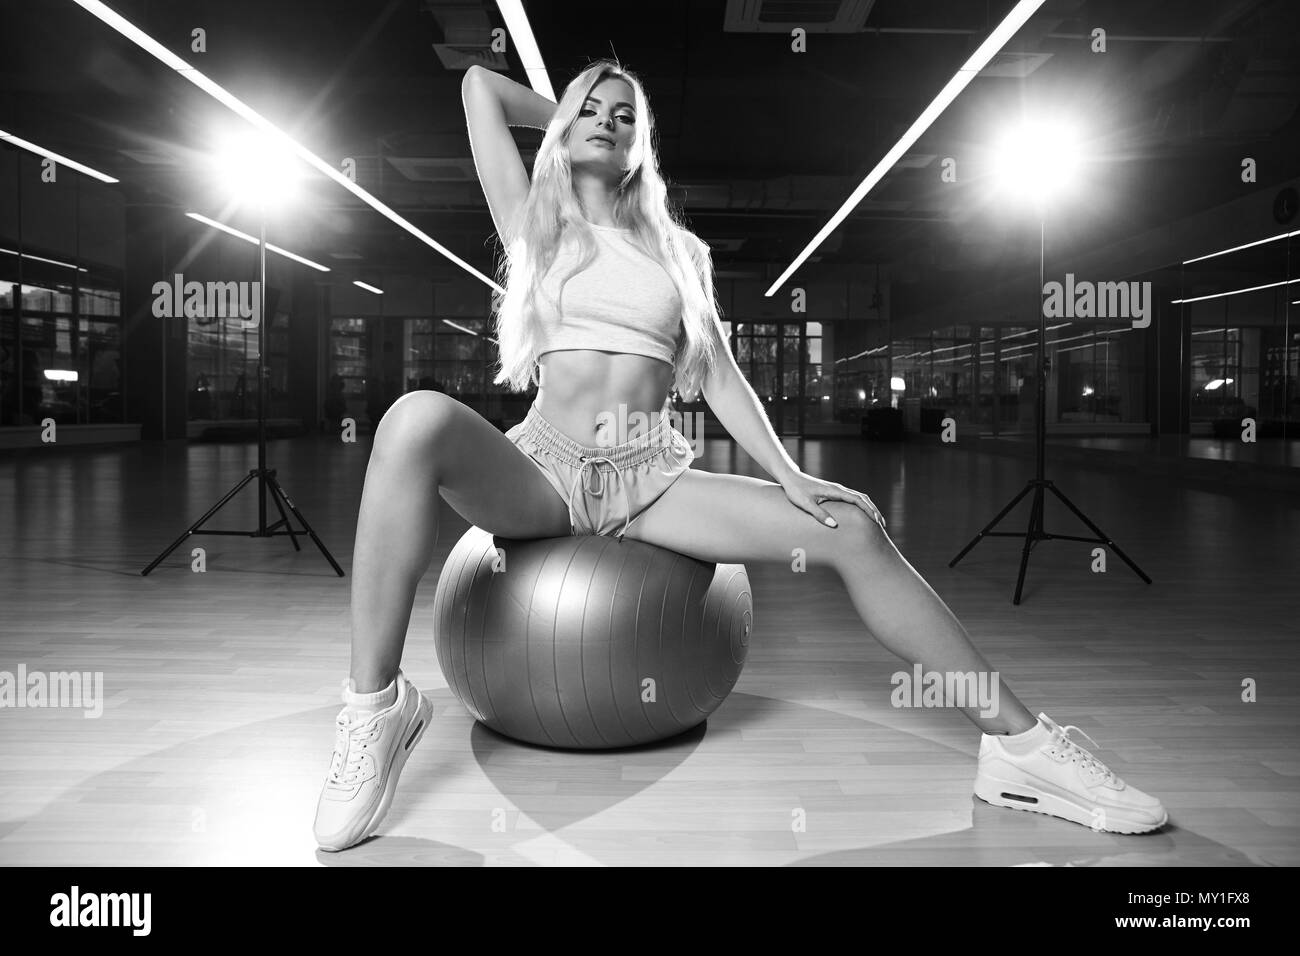 Blonde woman sitting on swiss ball - Stock Image